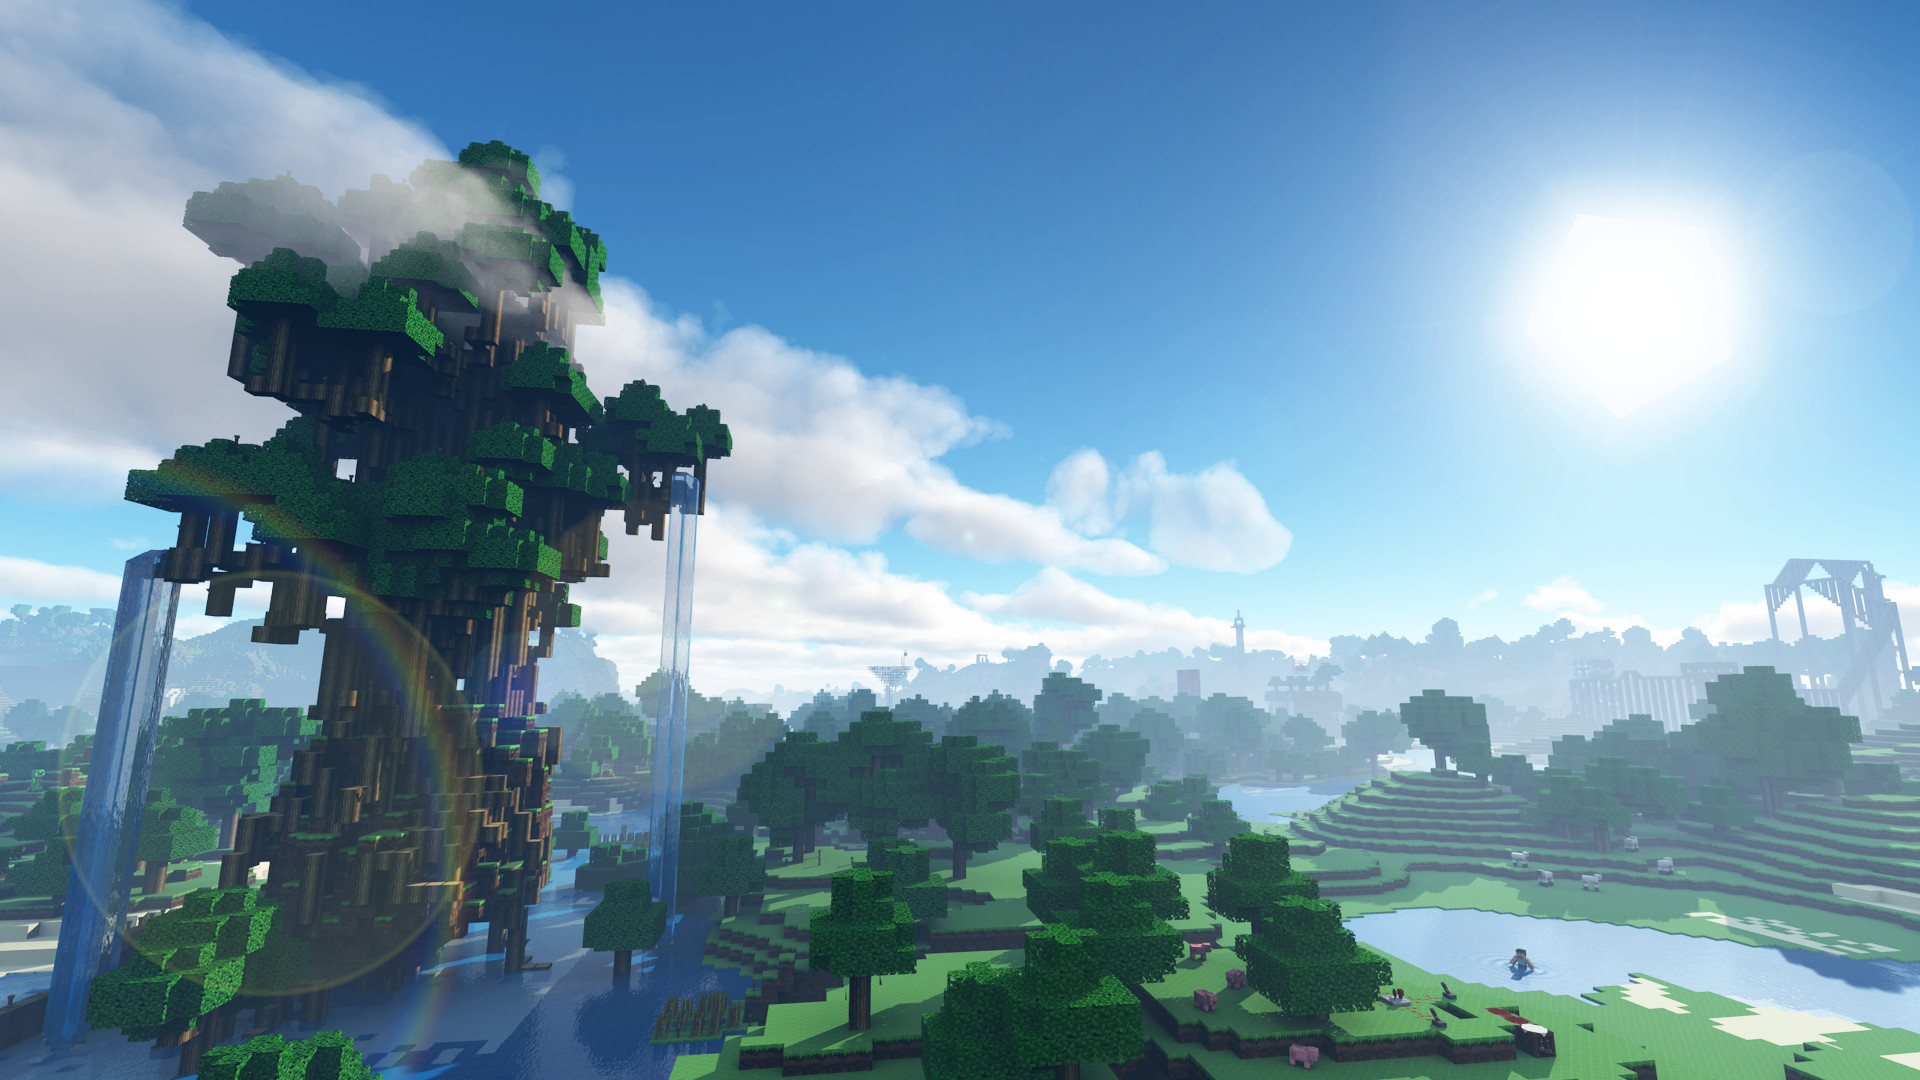 1920x1080 Minecraft Wallpapers